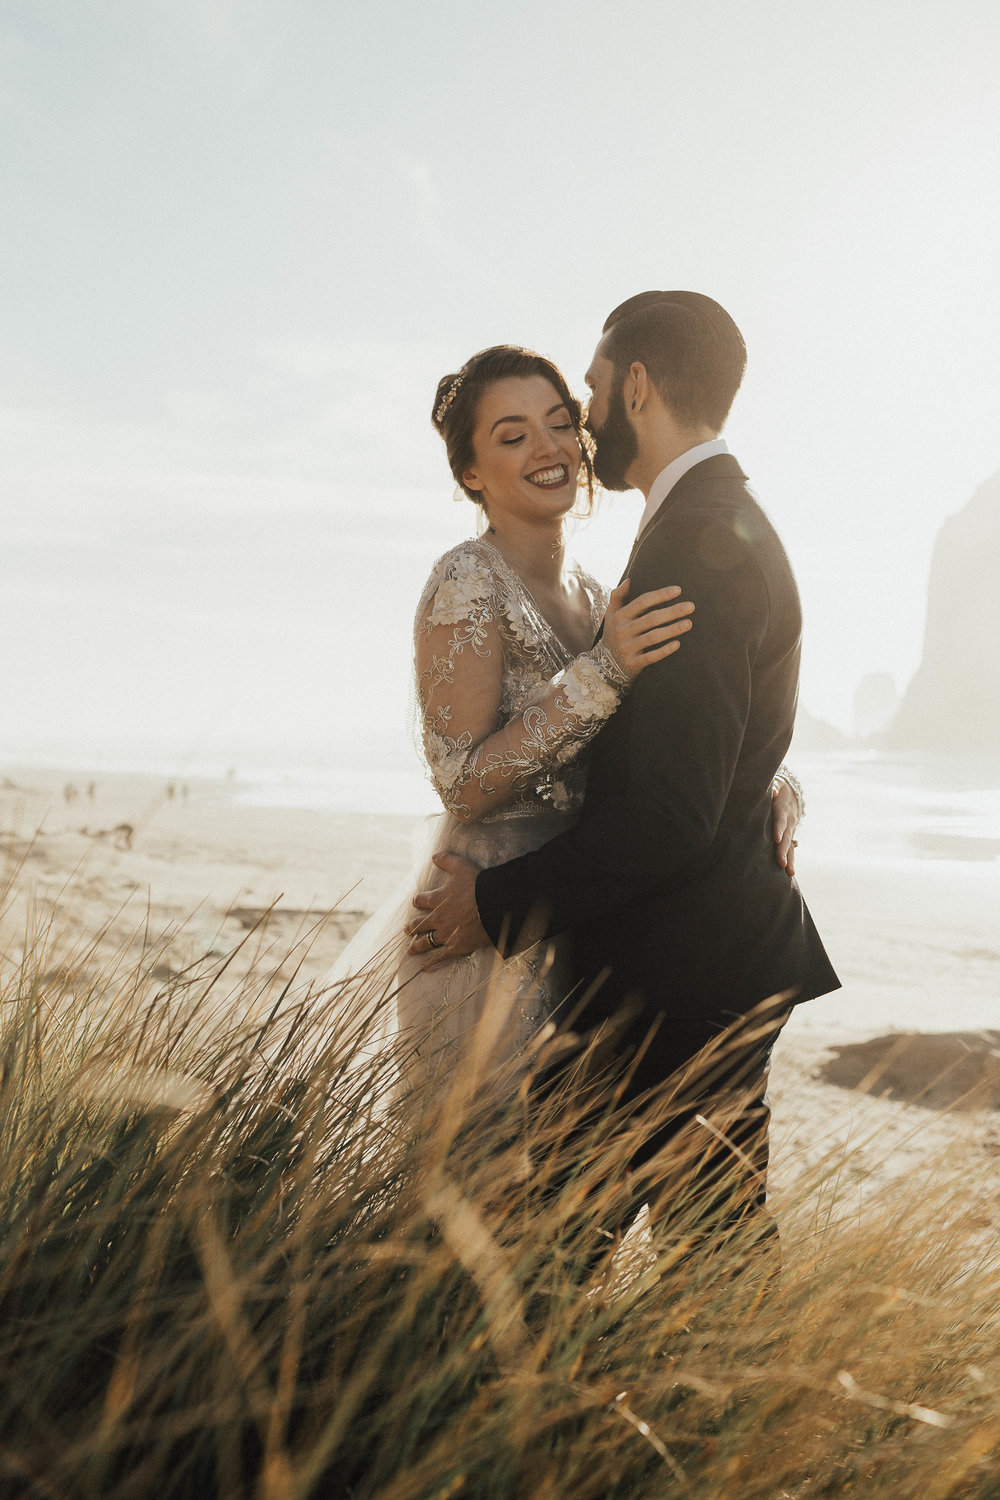 Cannon Beach Elopement - Michelle Larmand Photography - 073